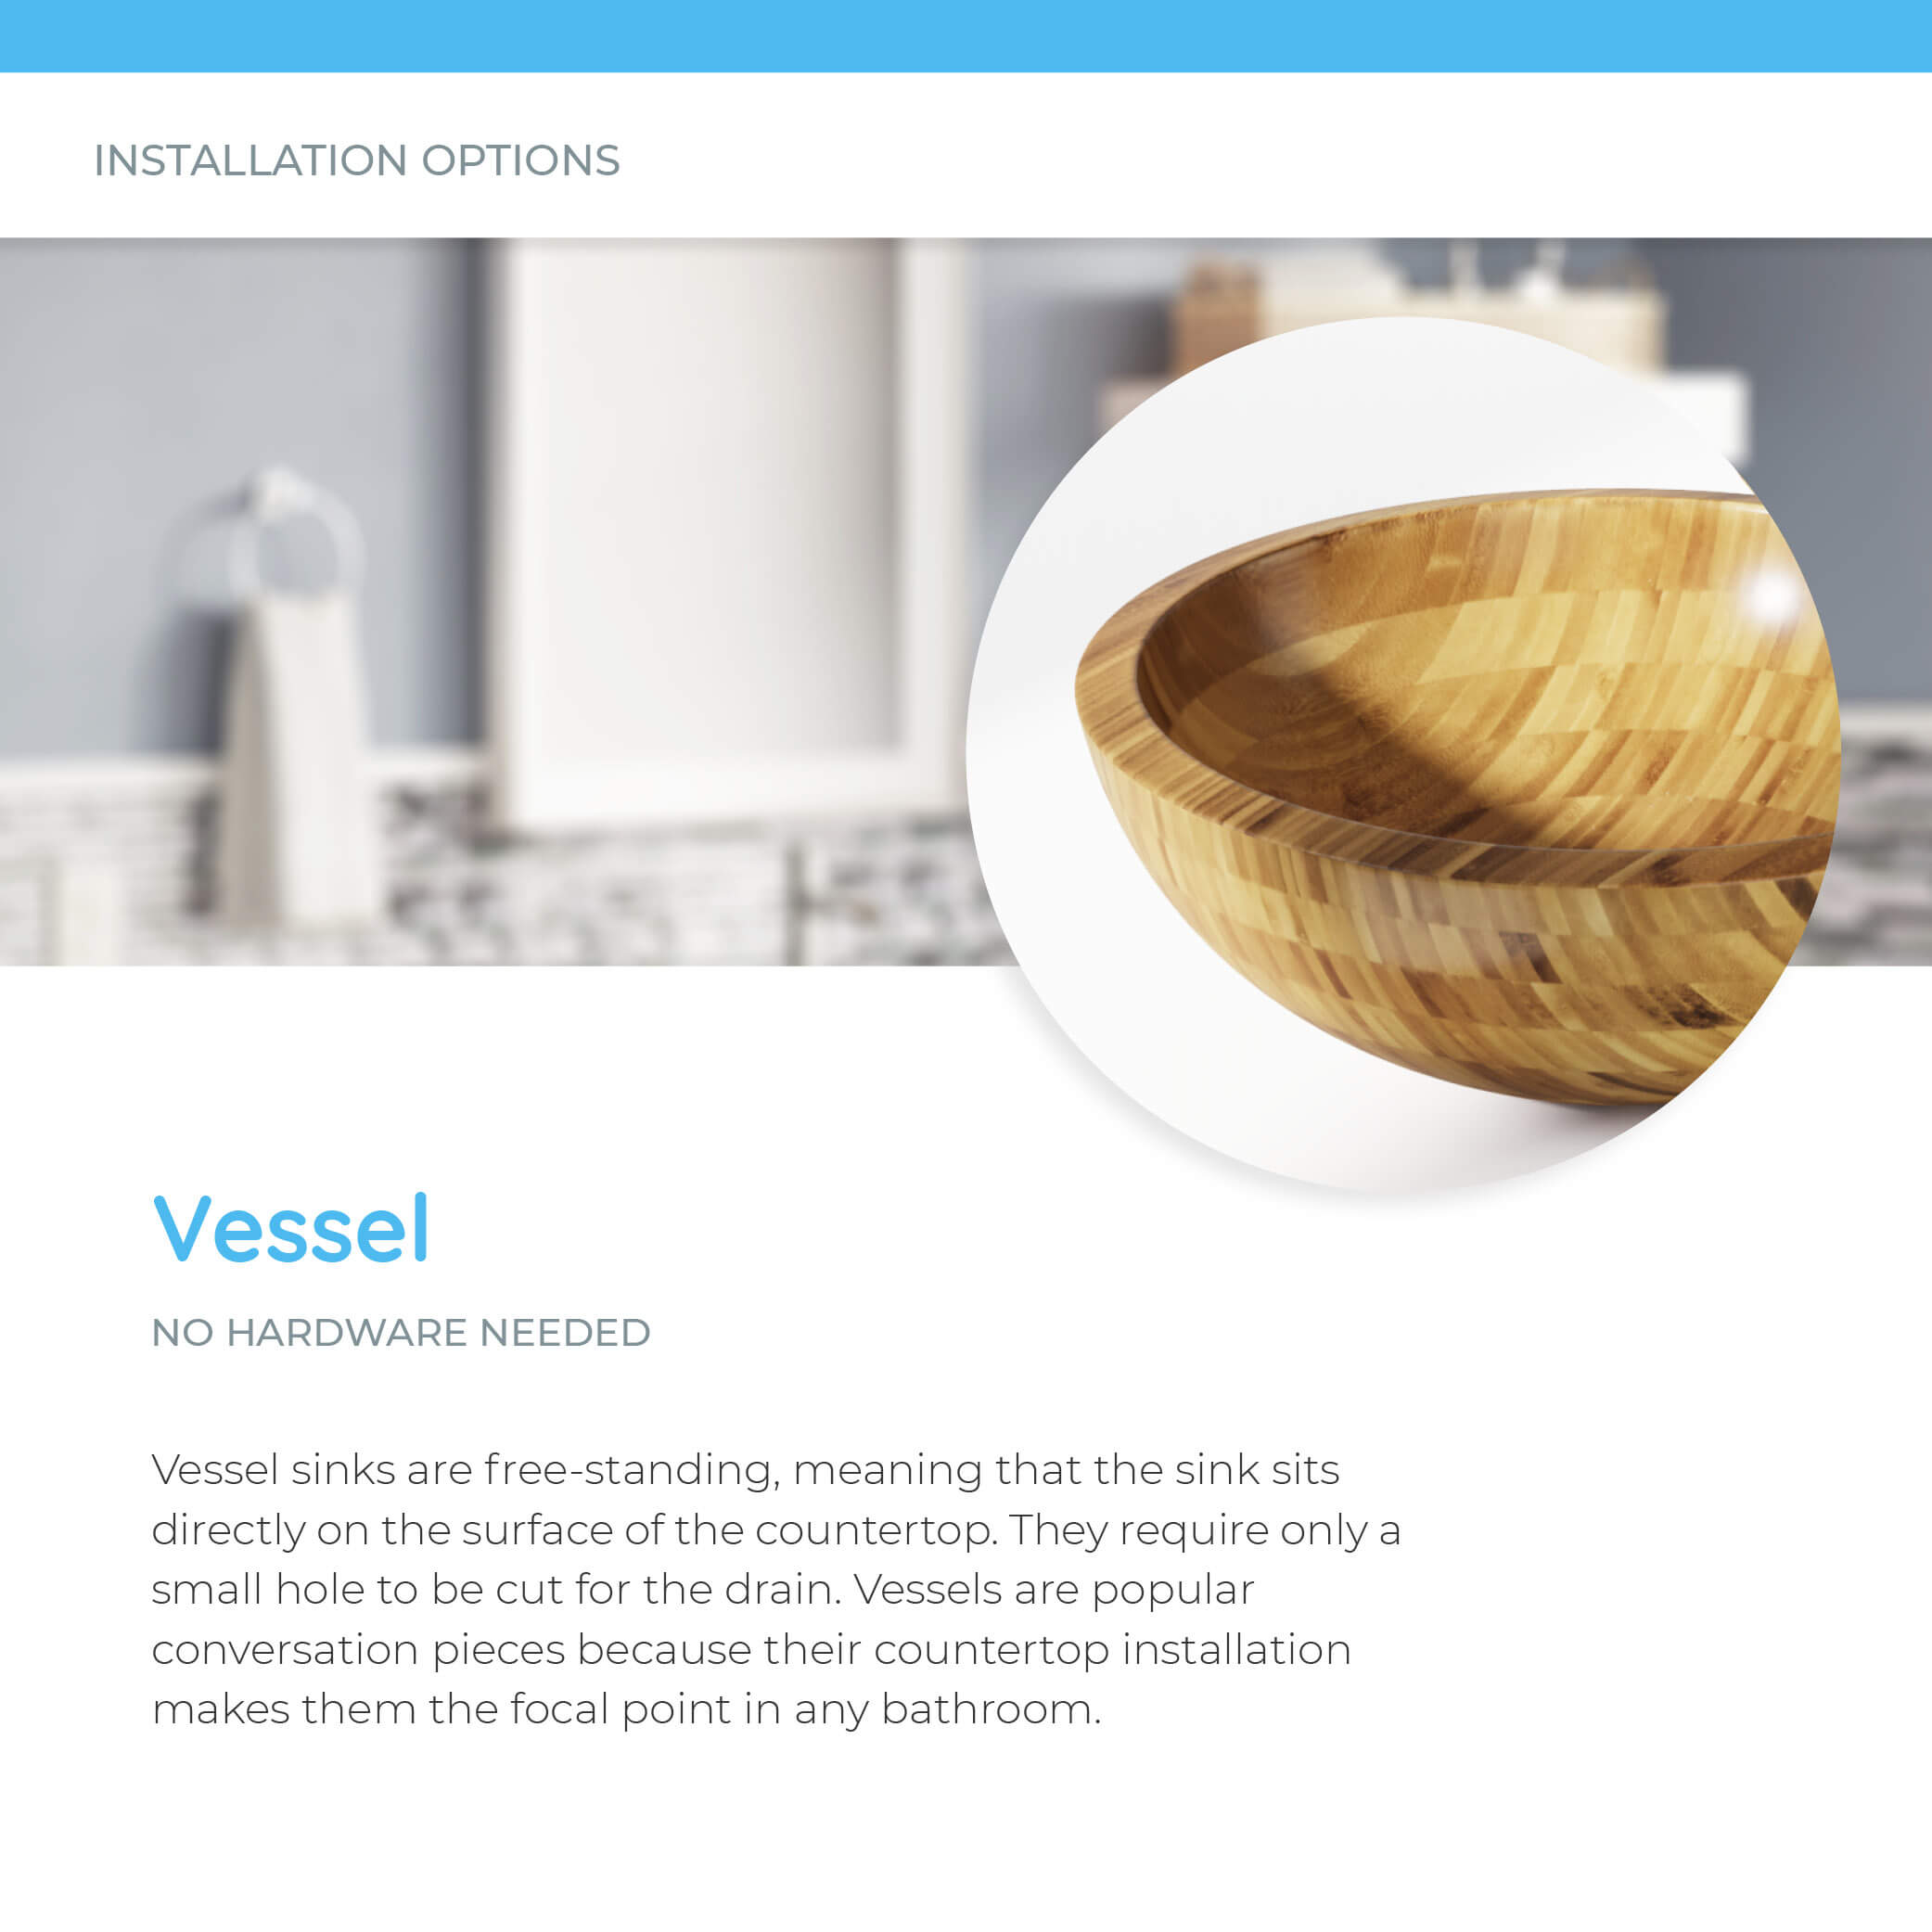 Bamboo vessel sink sitting on countertop